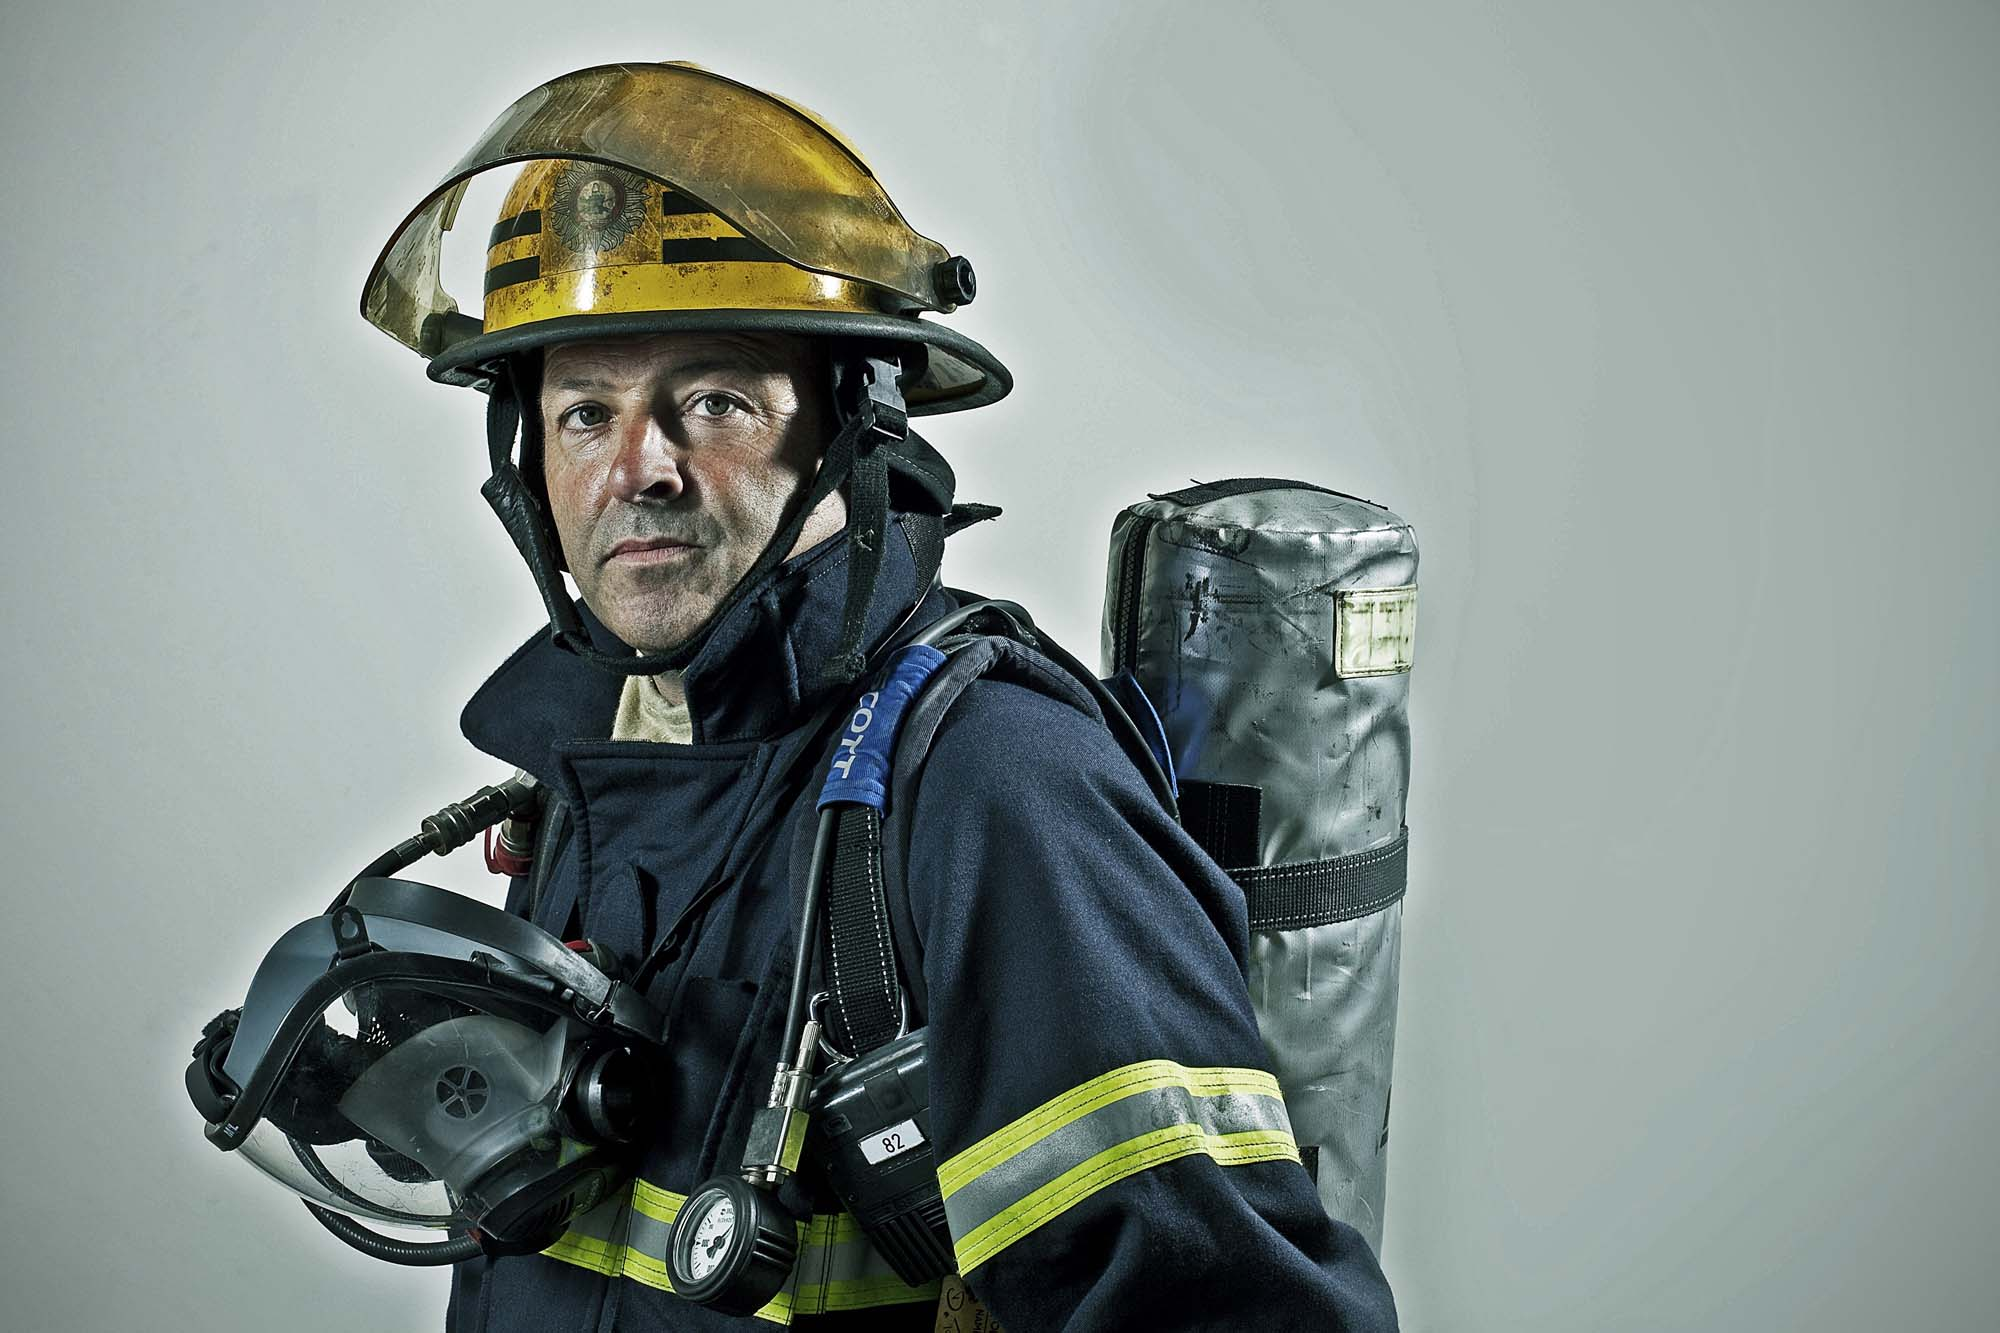 firefighters final rt eacute presspack firefighters tuesdays at 8 30 from sept 4th on rtatilde one